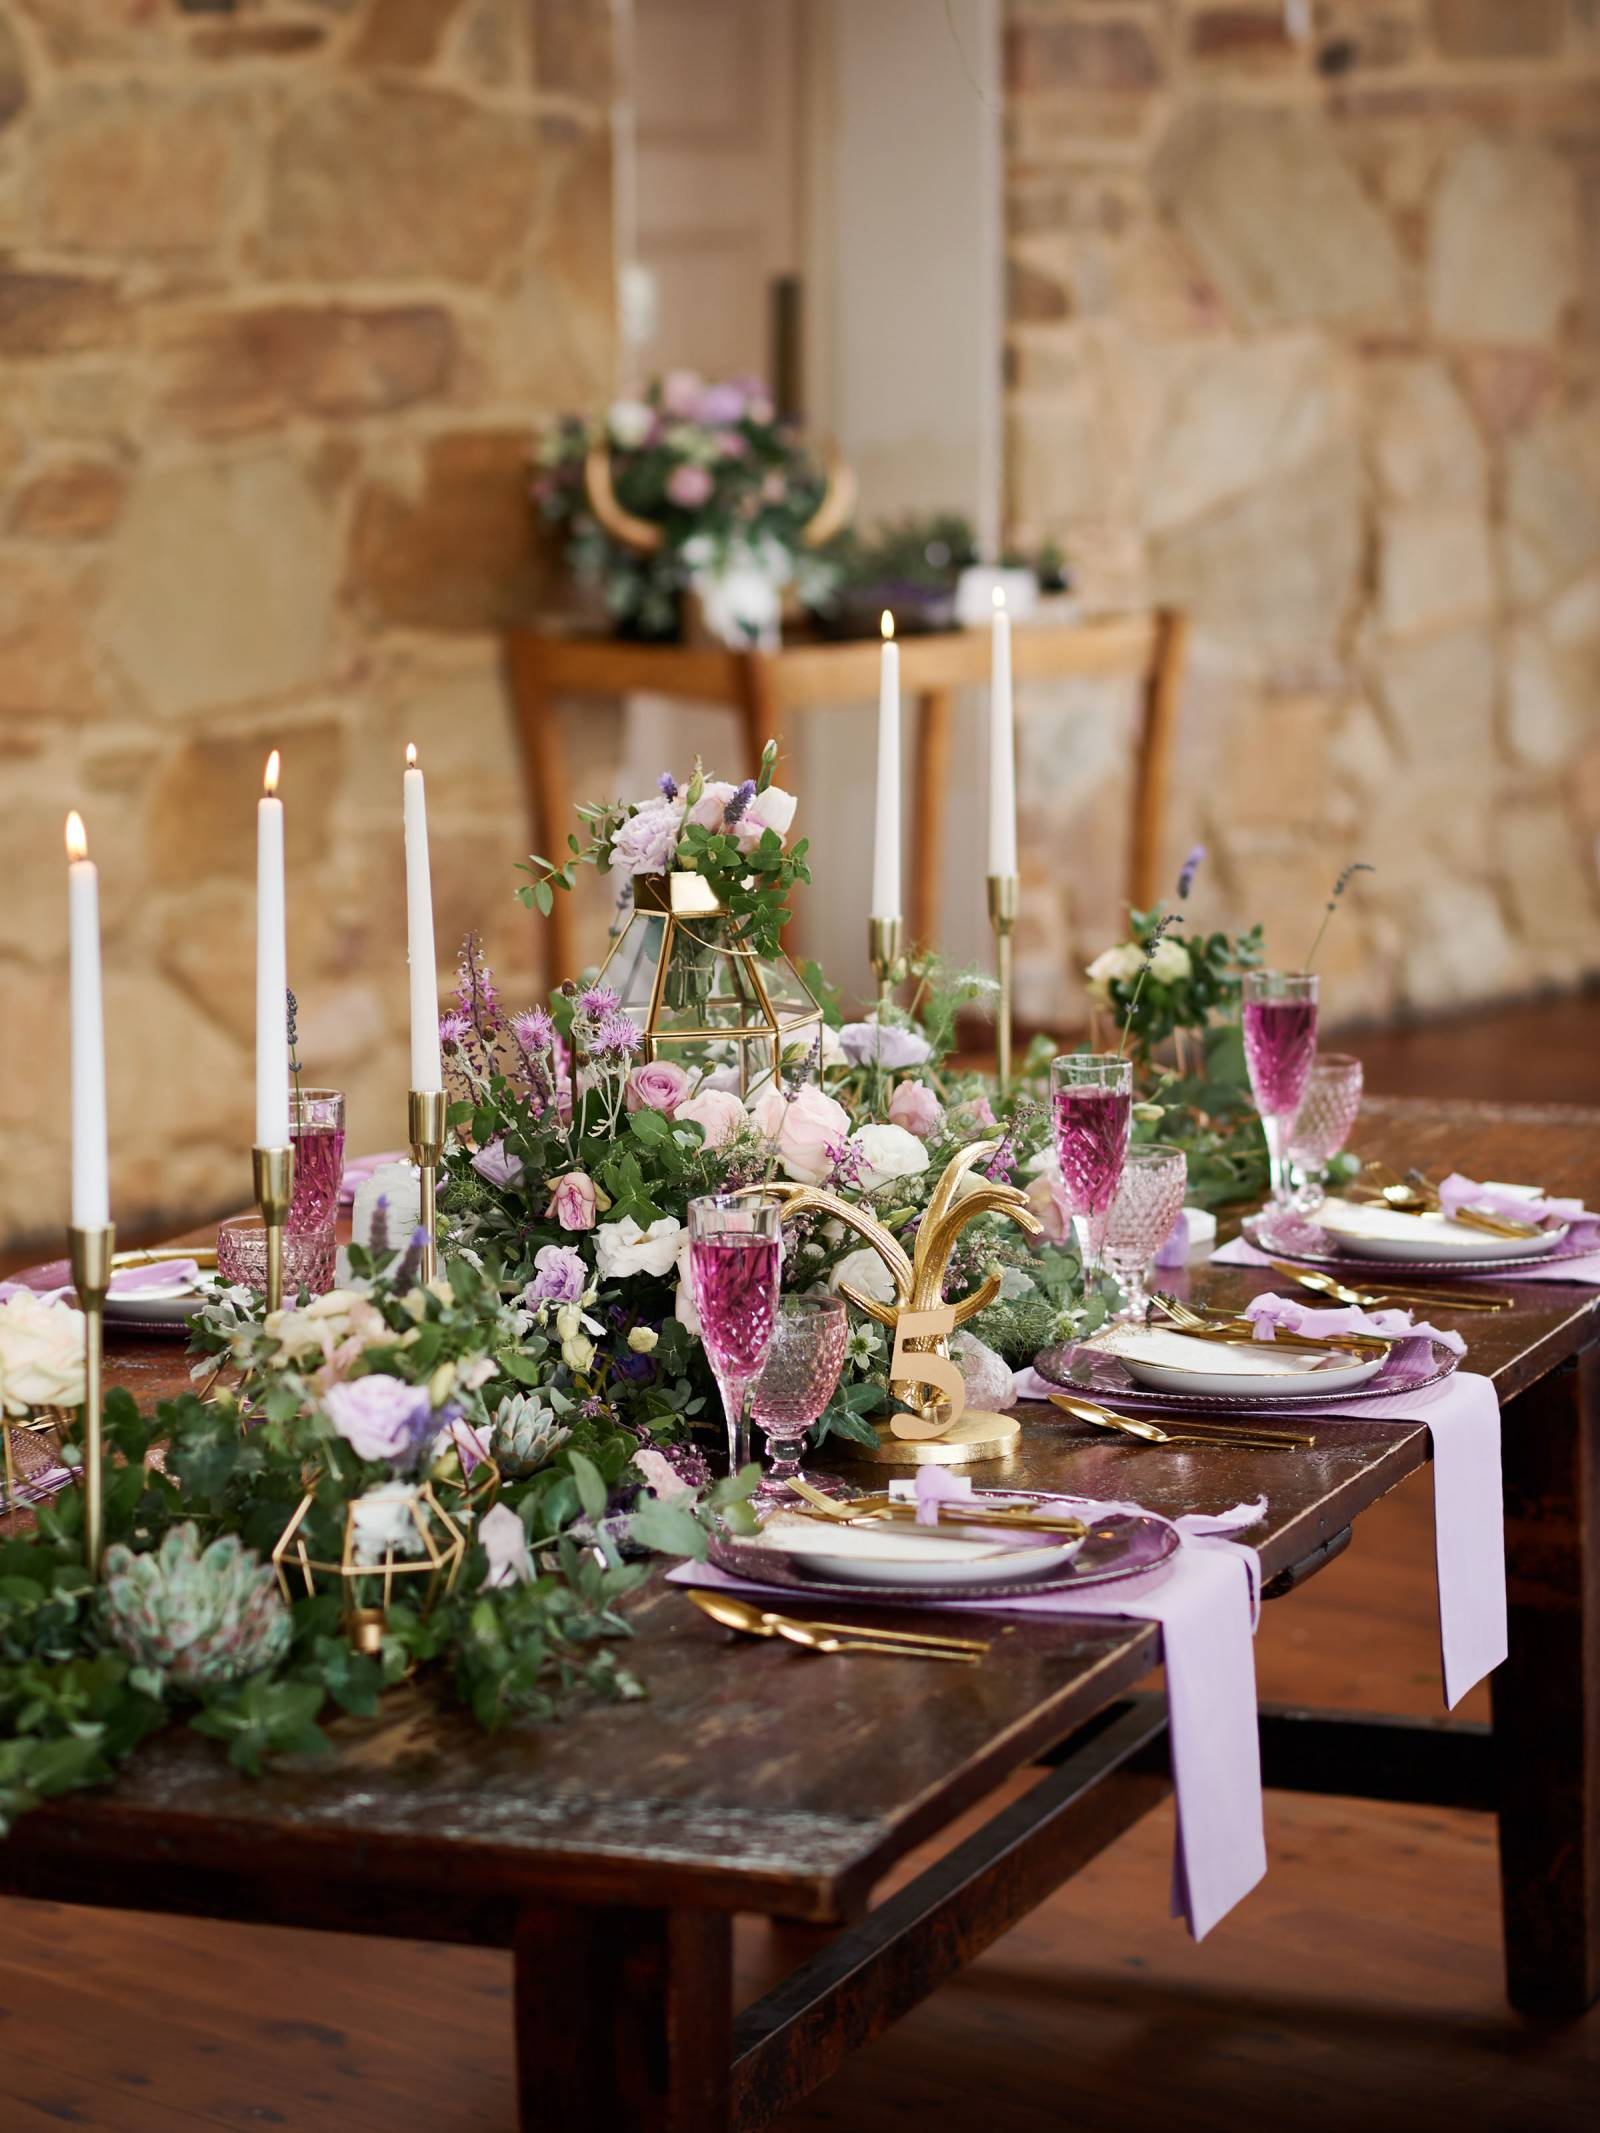 Wood table with pink and lavender florals and napkins, tapered candles, china and crystal